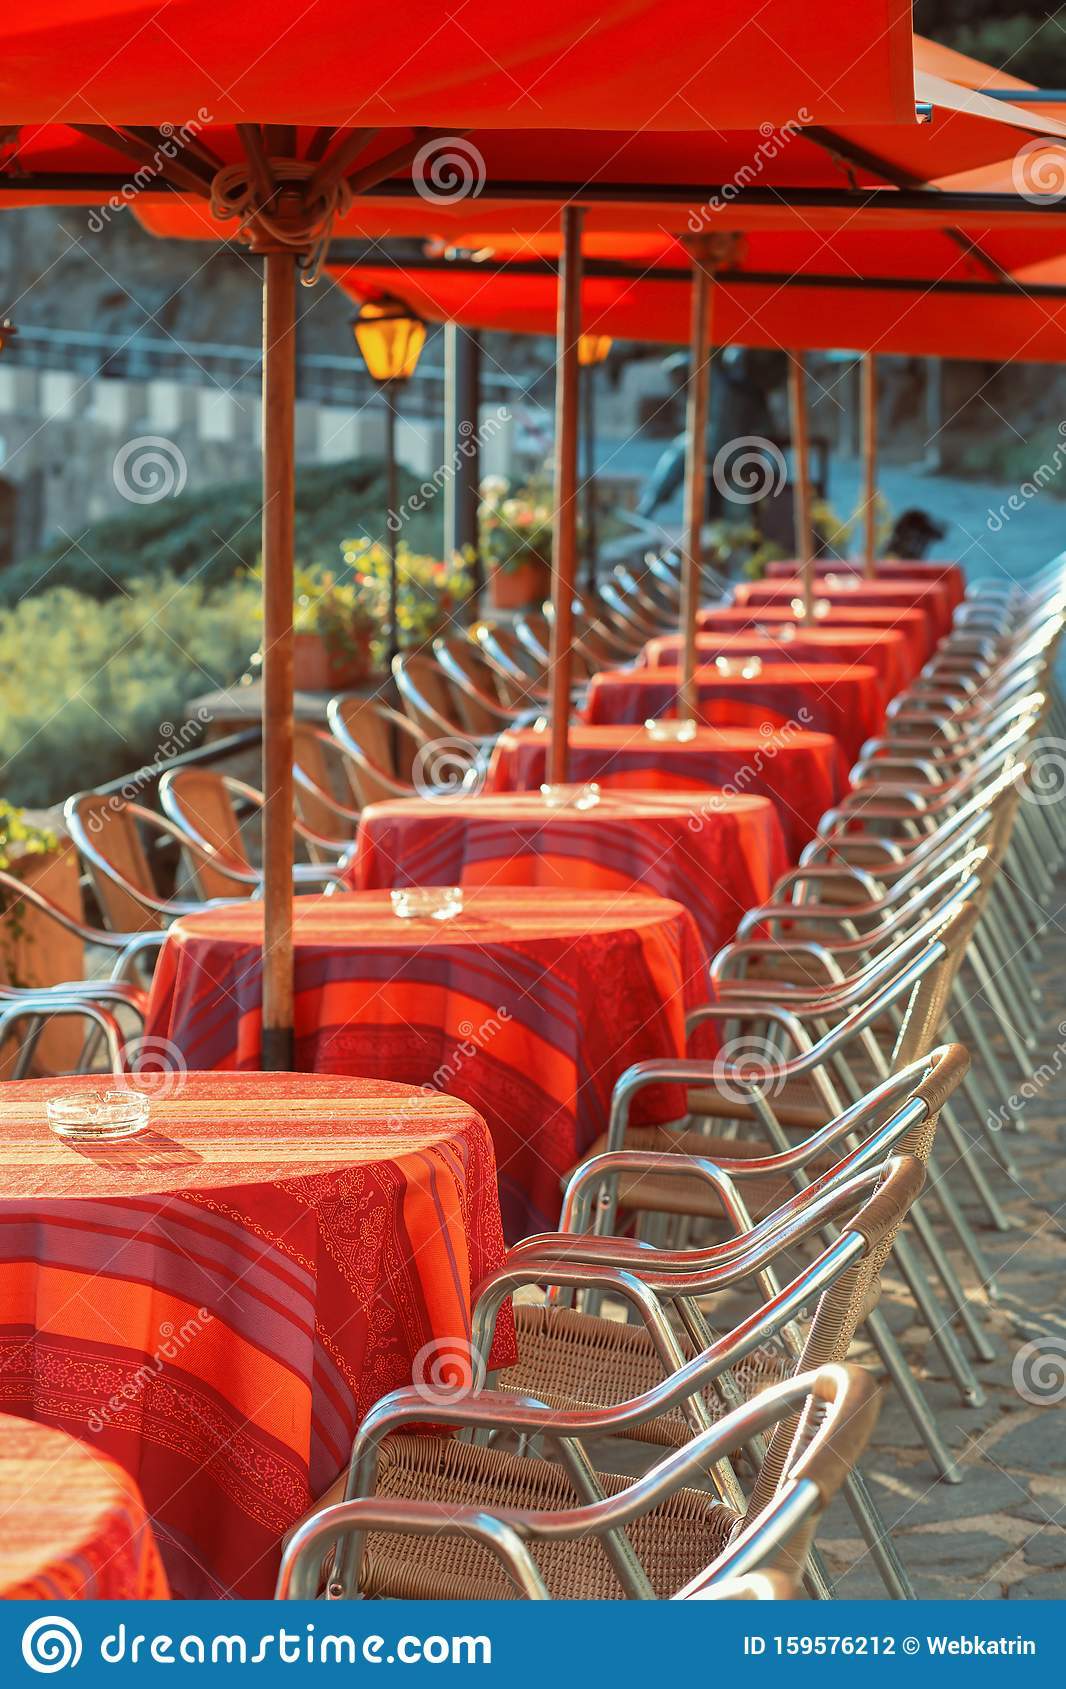 A Row Of Tables With Red Tablecloths On The Open Terrace Of A Restaurant In The Seaside Town Stock Photo Image Of Chair Open 159576212